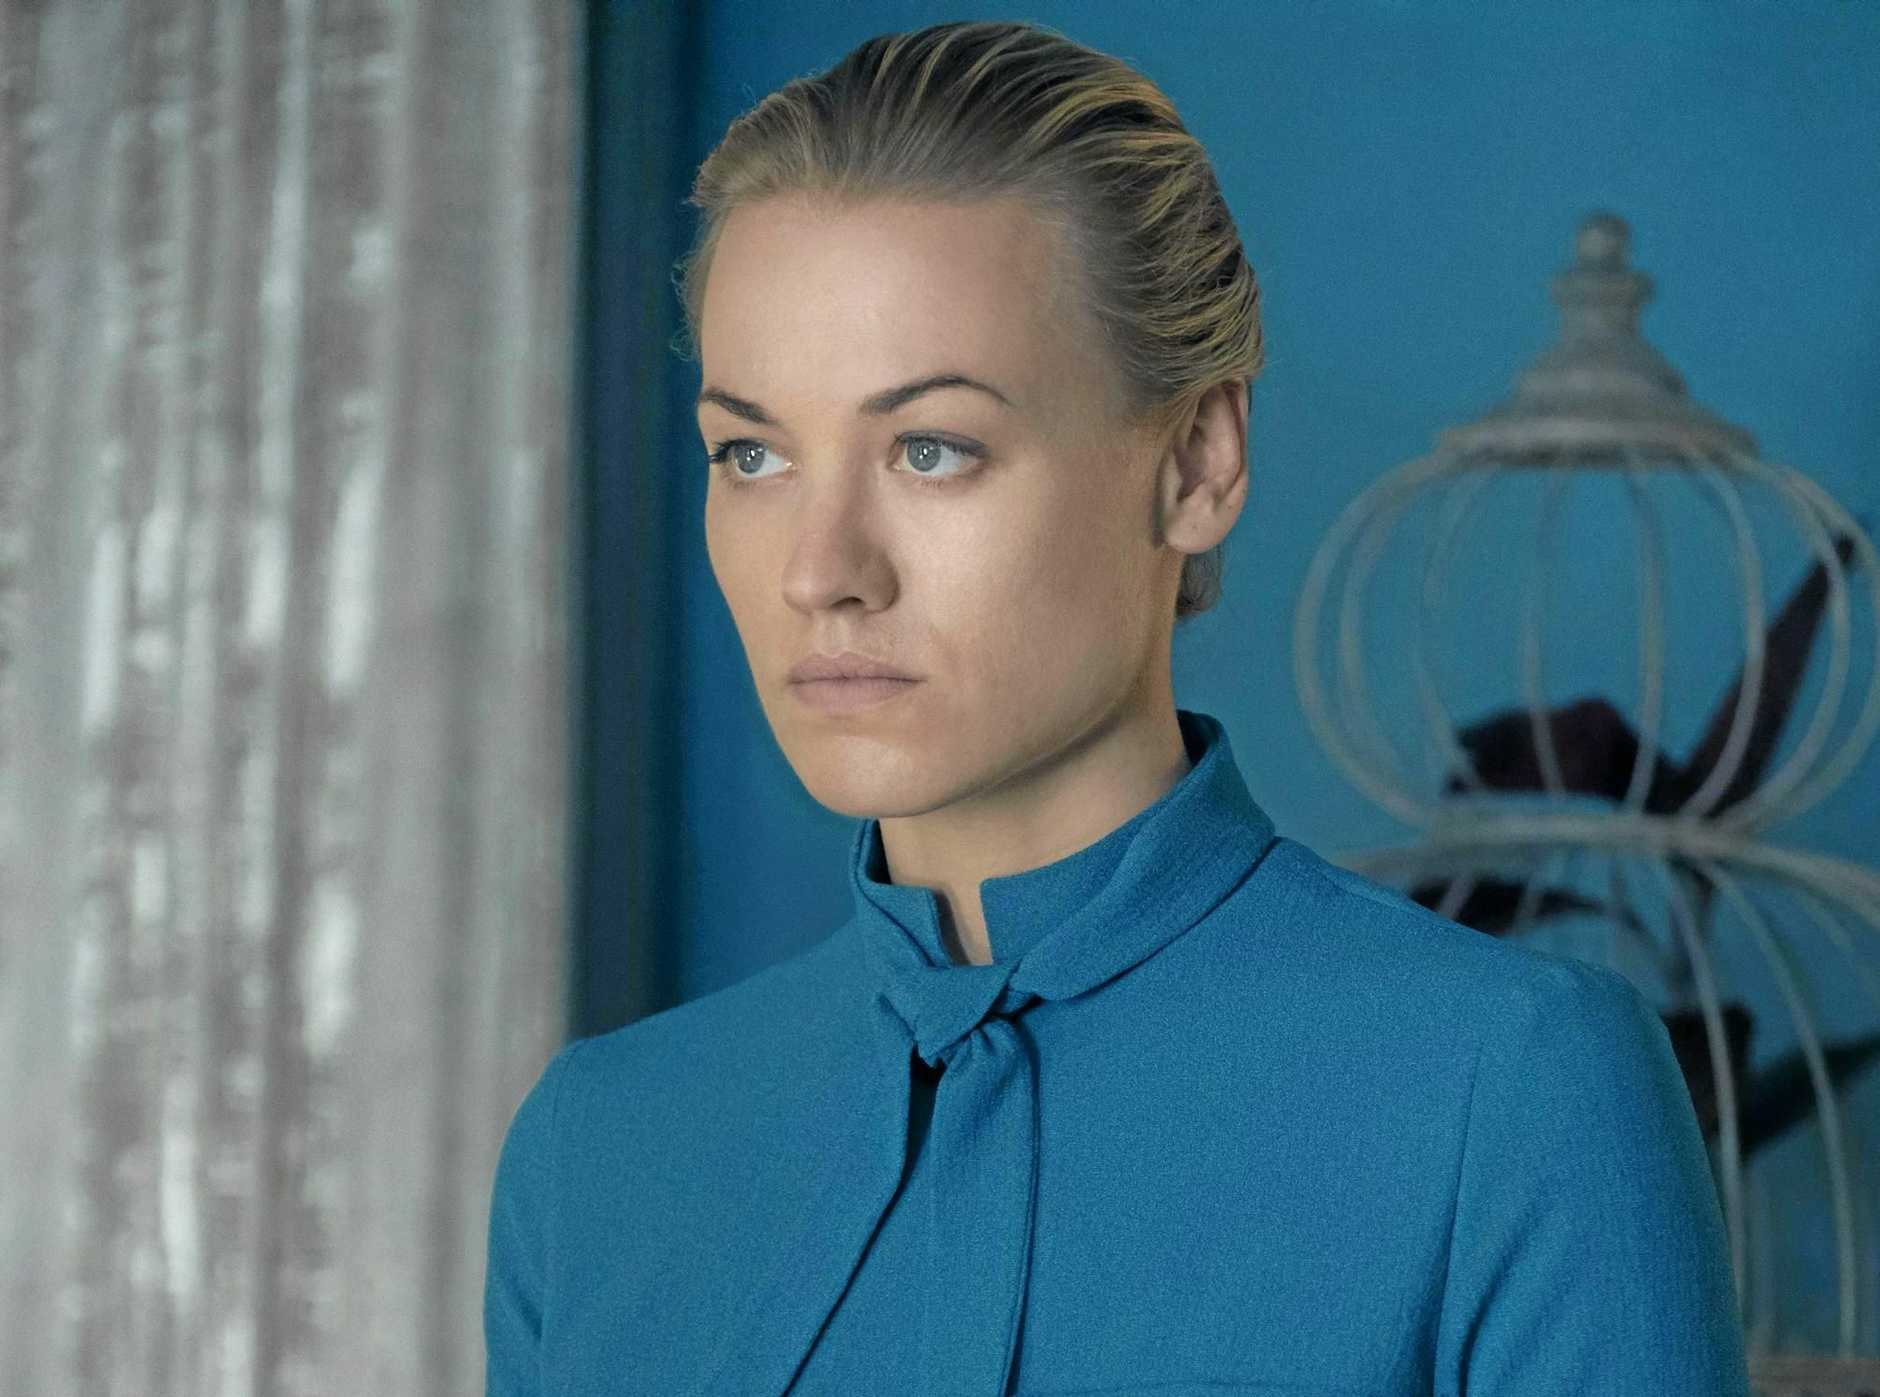 Yvonne Strahovski in a scene from the TV series The Handmaid's Tale. Supplied by SBS TV.